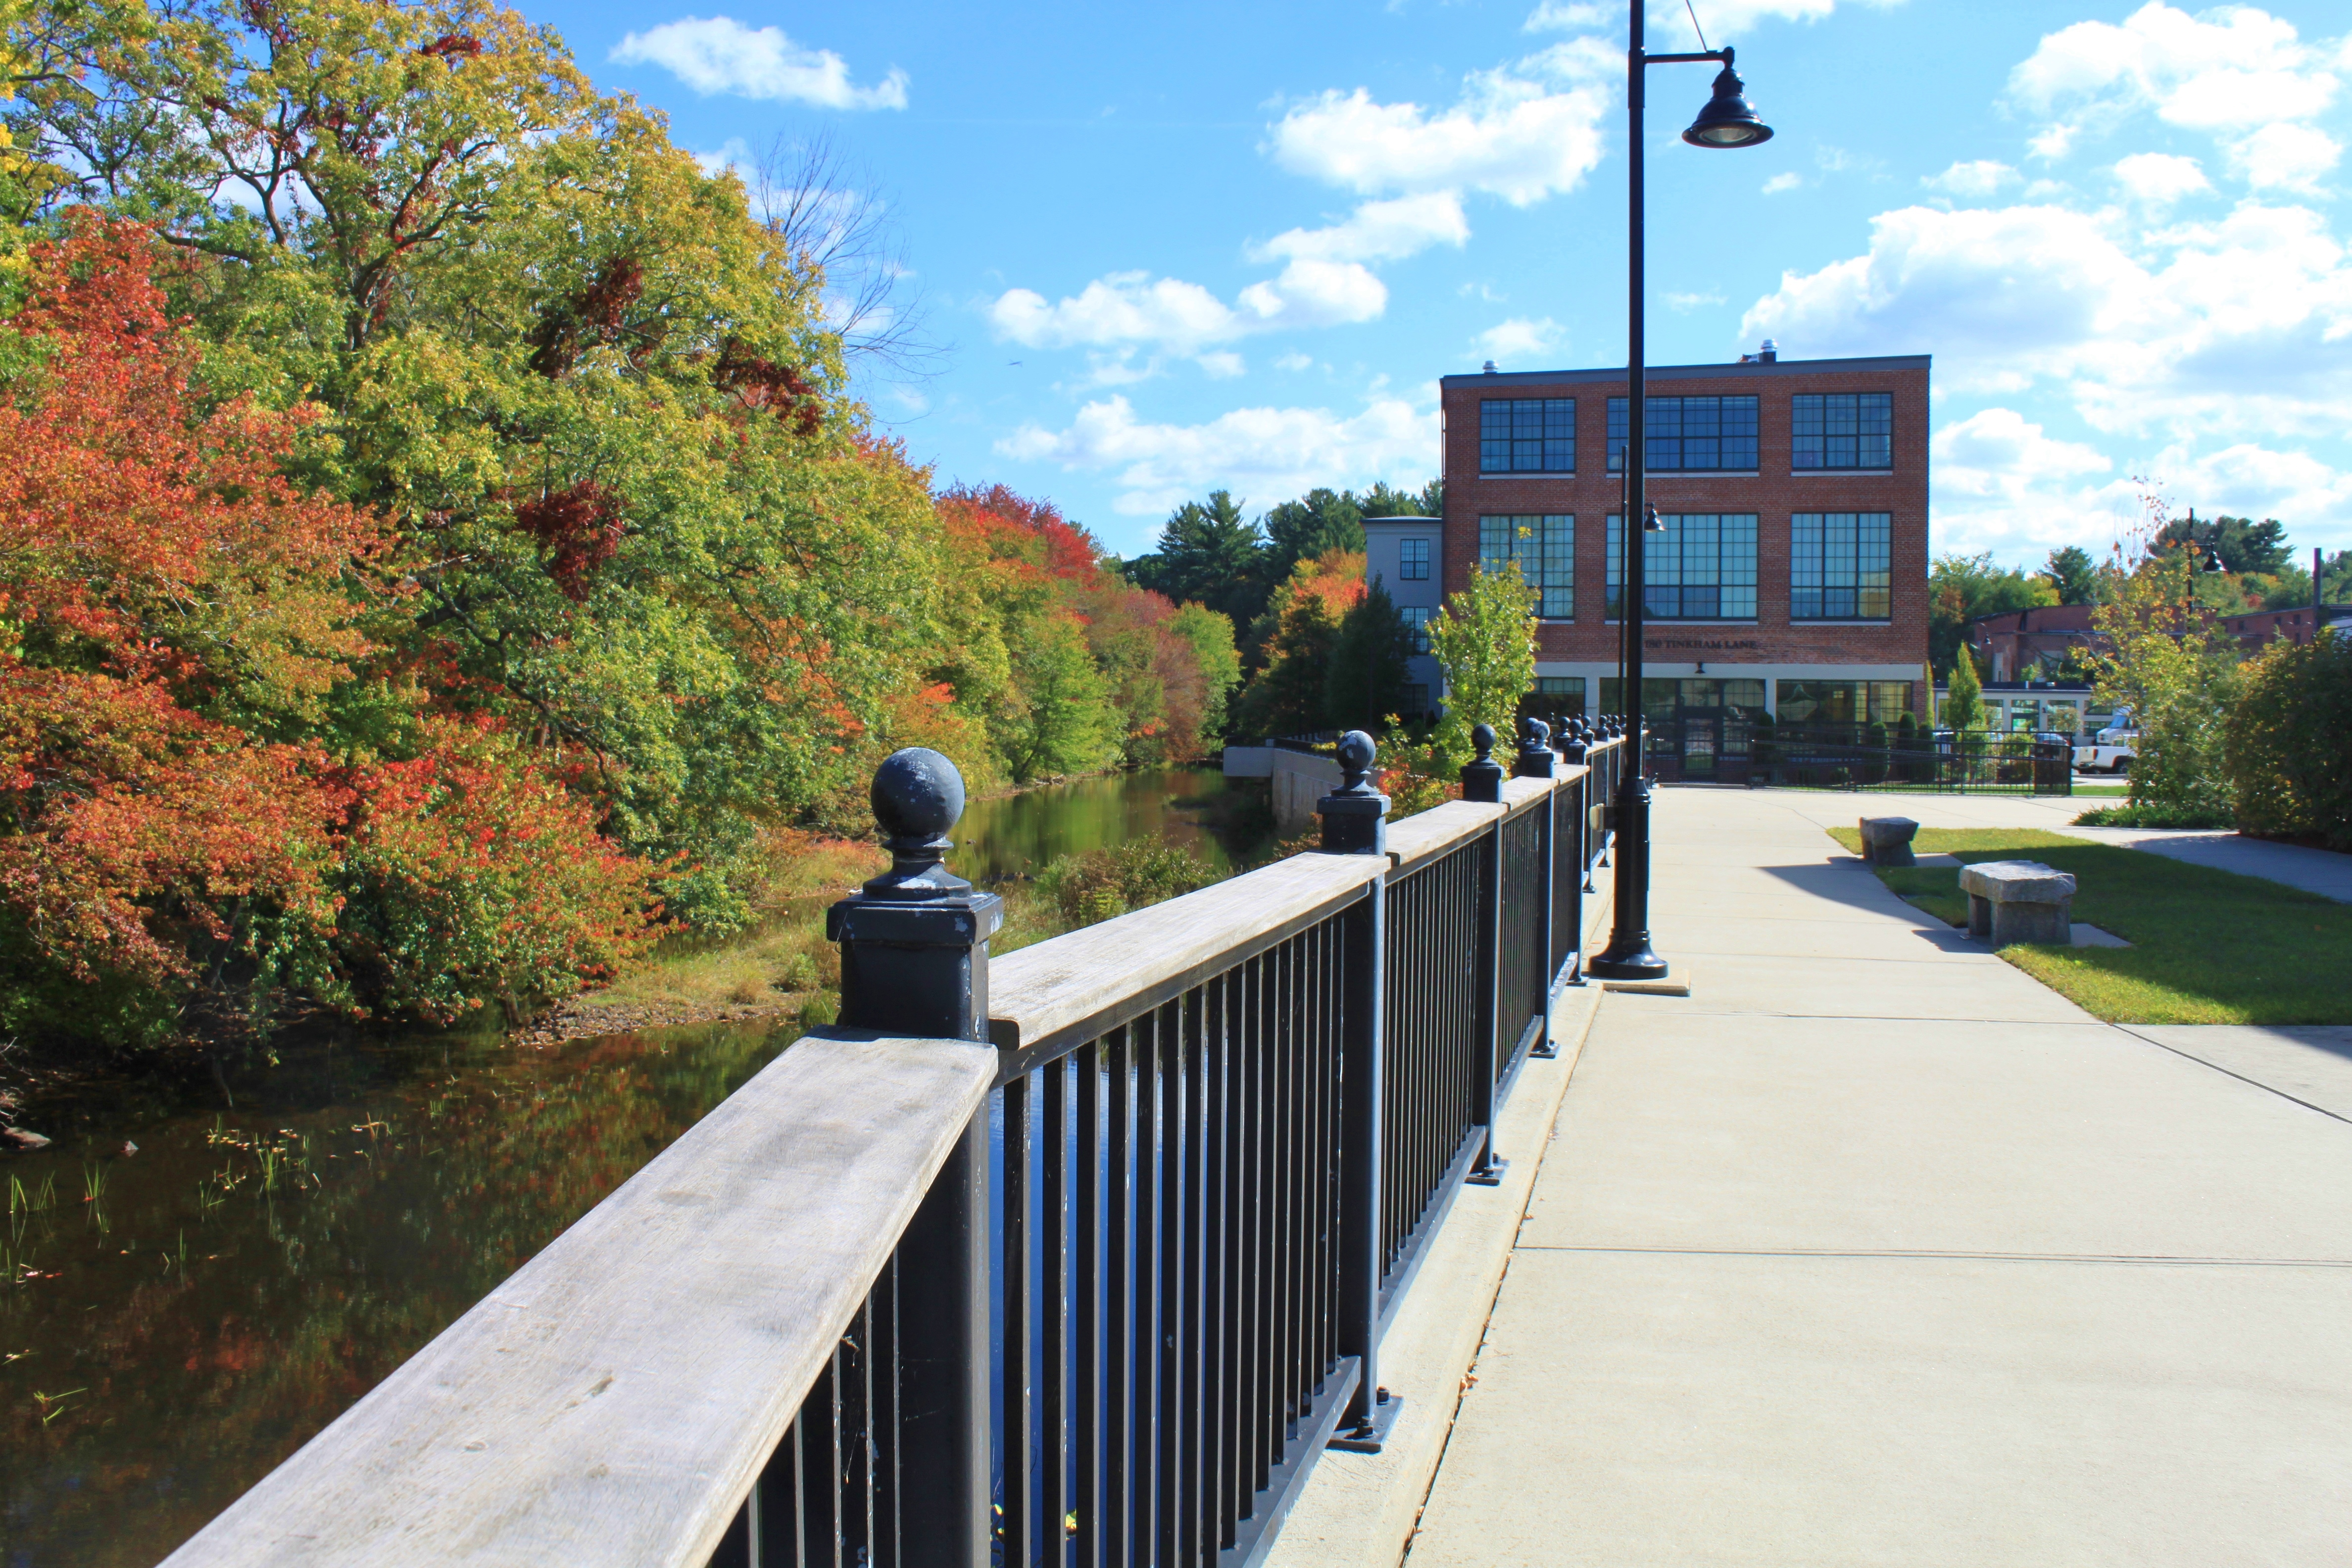 River walk, next to the Jesse M. Smith Memorial Library, looking ahead to the newly redeveloped Clocktower Apartments.